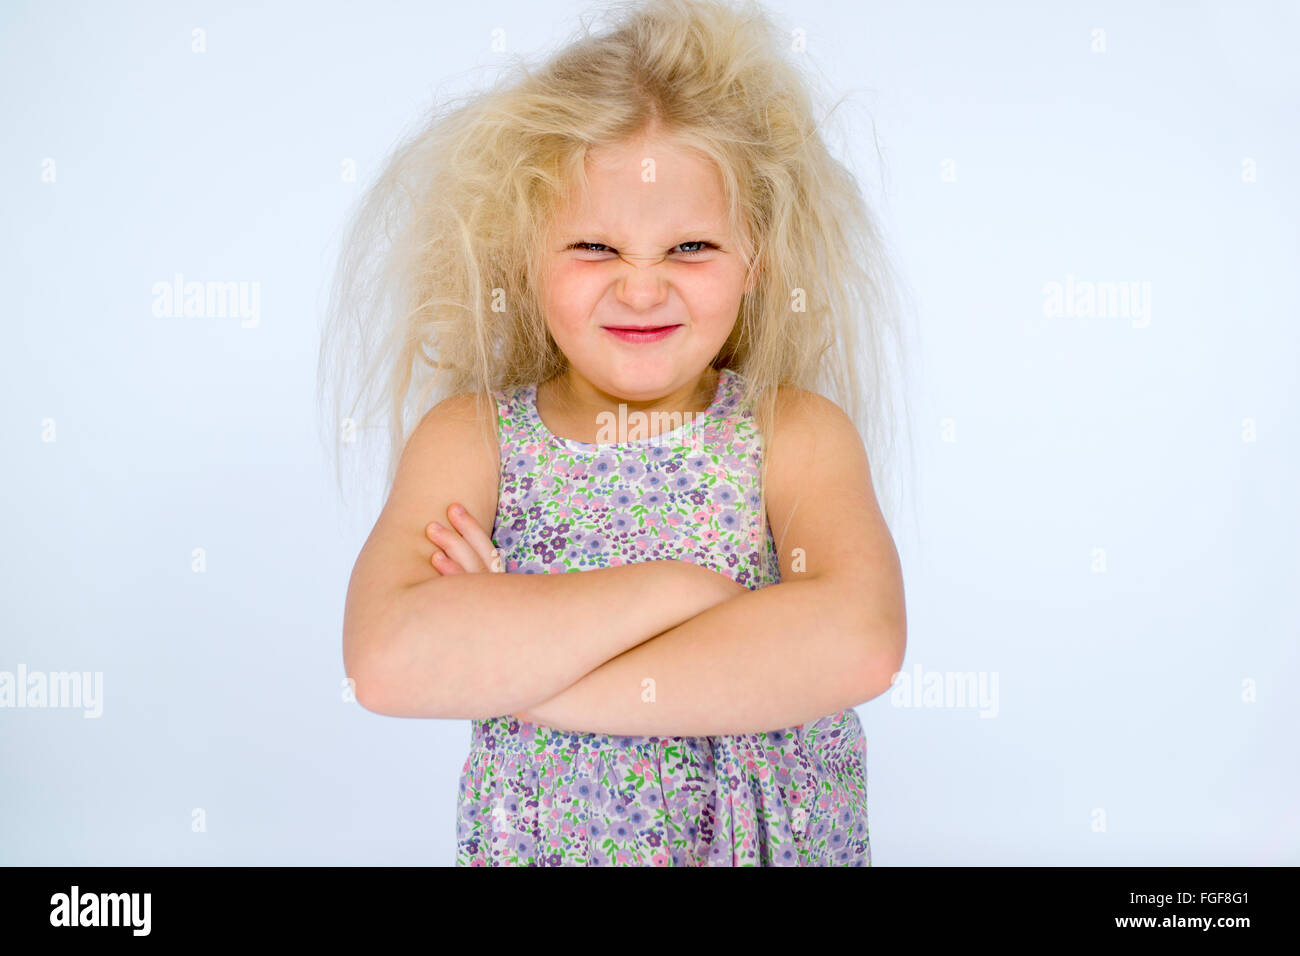 Young girl with messy blonde hair frowning with folded arms and a cheeky grin - Stock Image